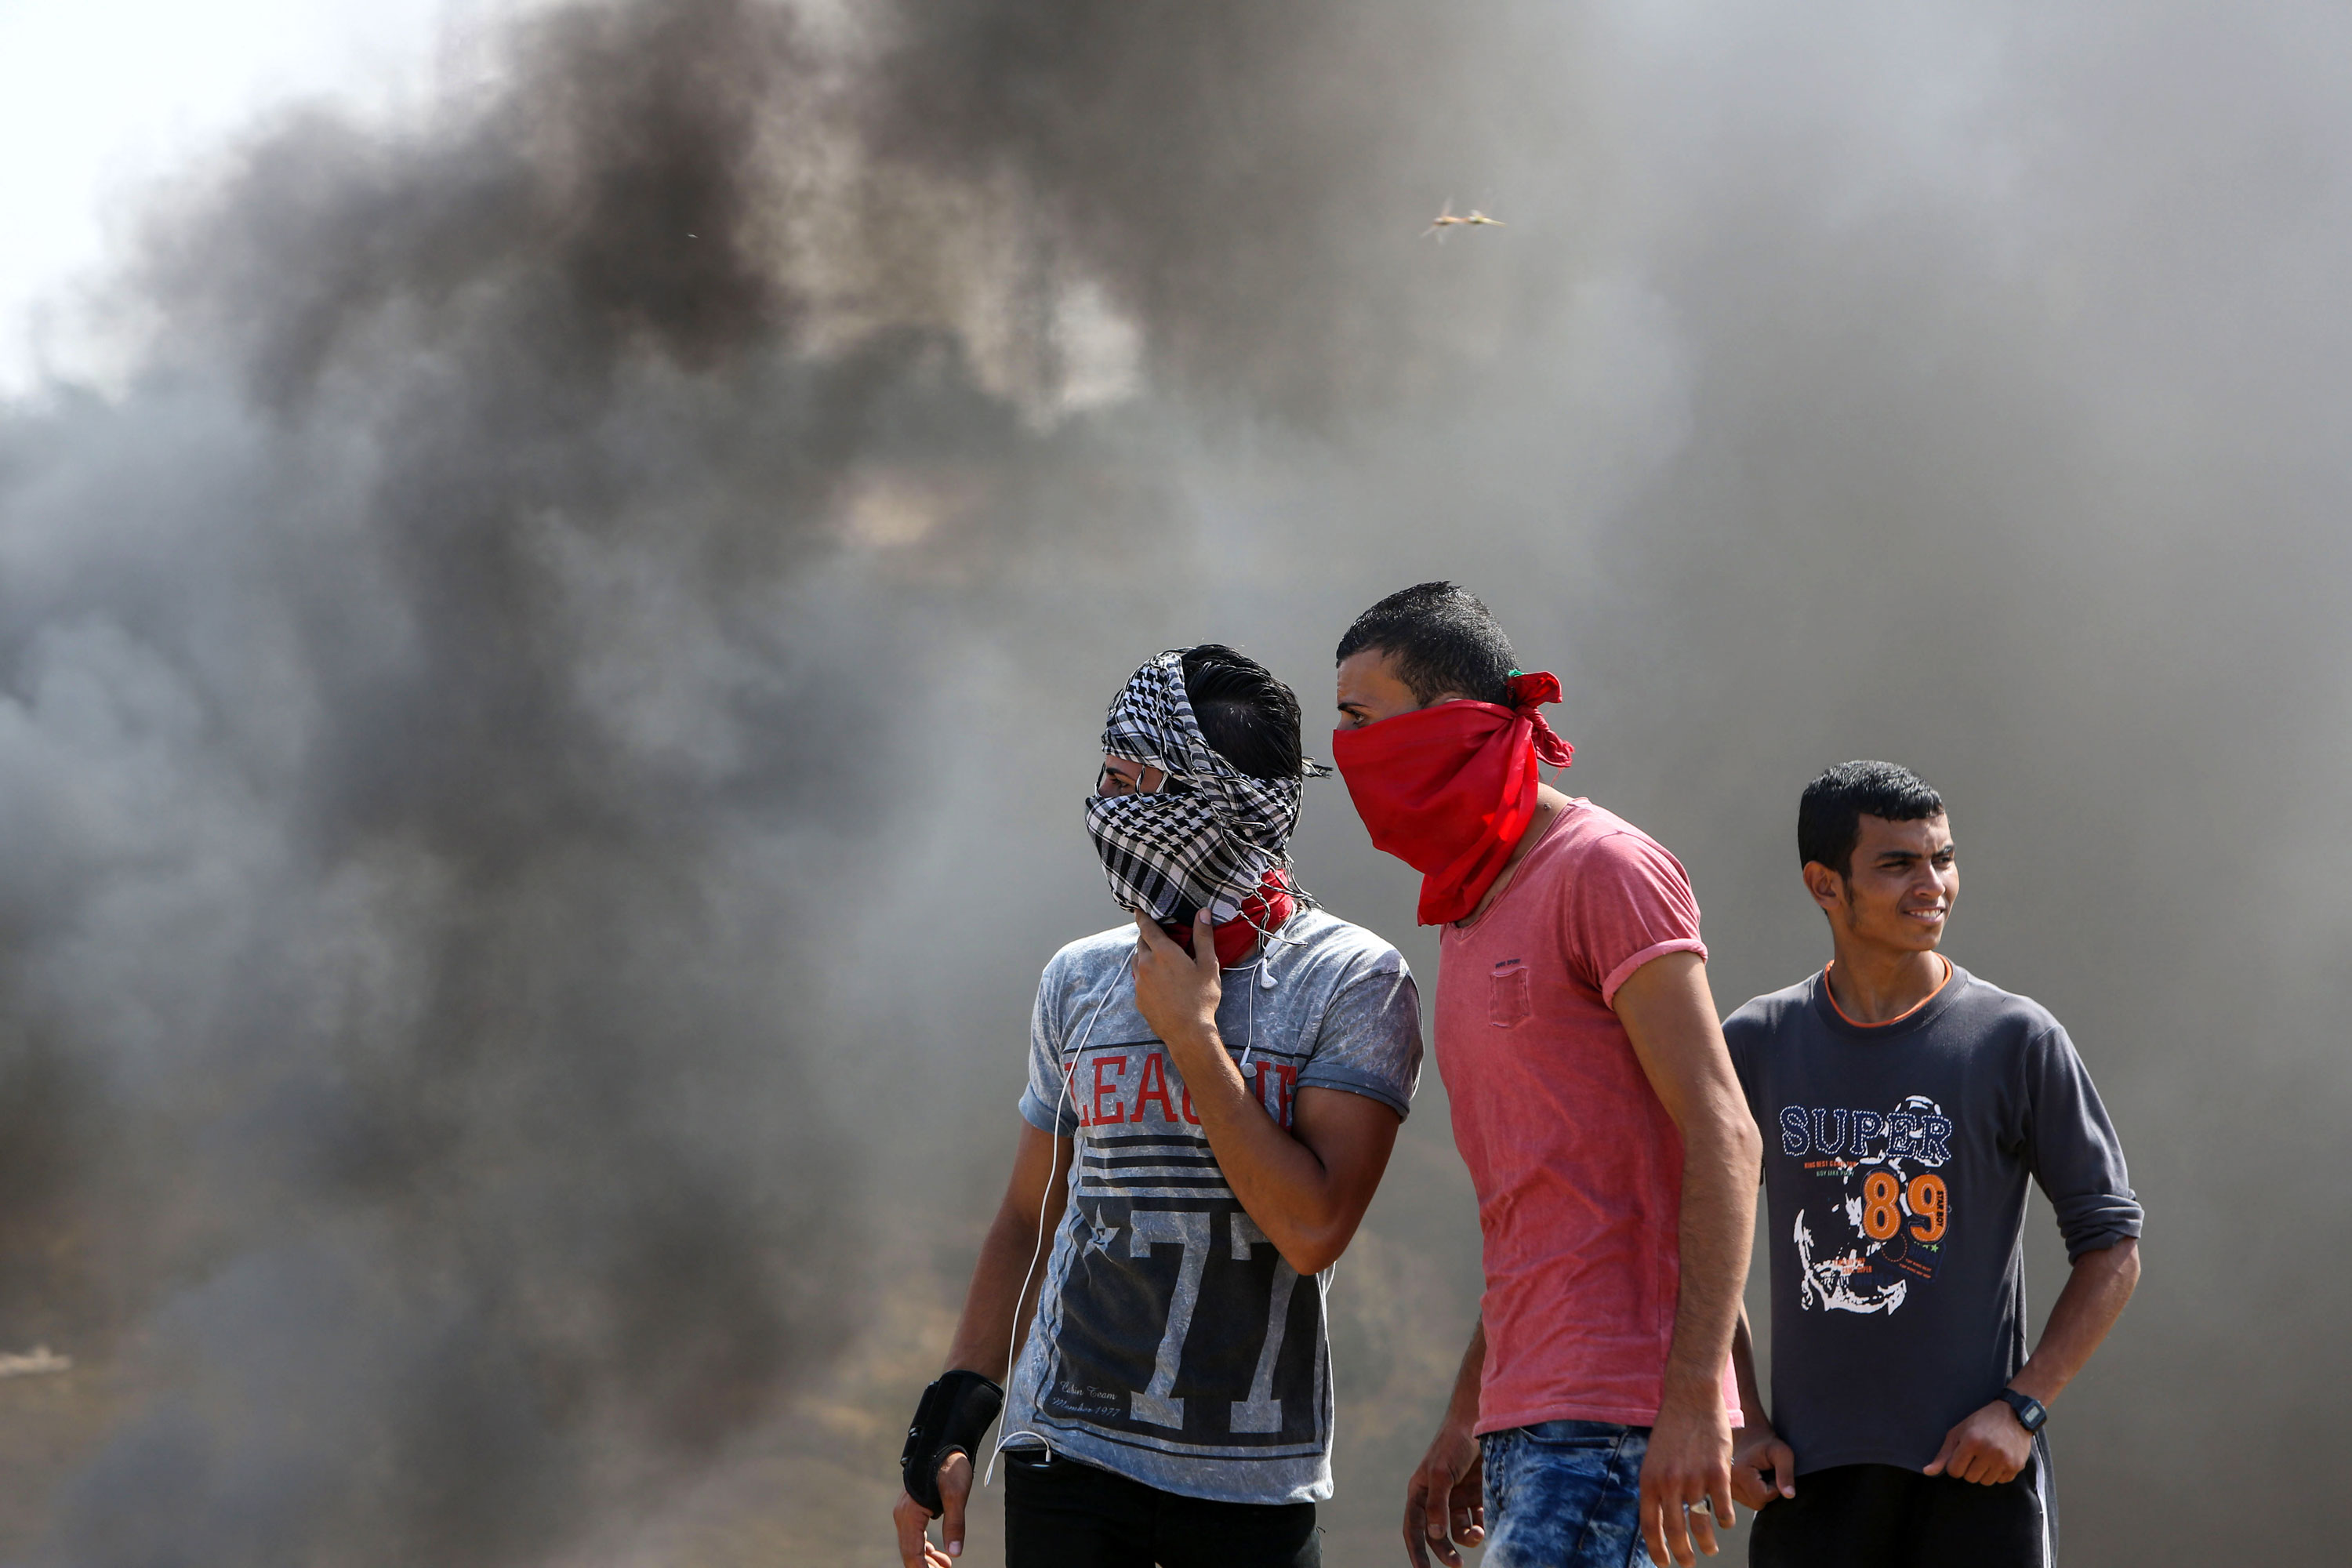 Israeli soldiers shot and killed two Palestinian teens in the Gaza Strip during confrontations. [Wisam Nasser/Al Jazeera]